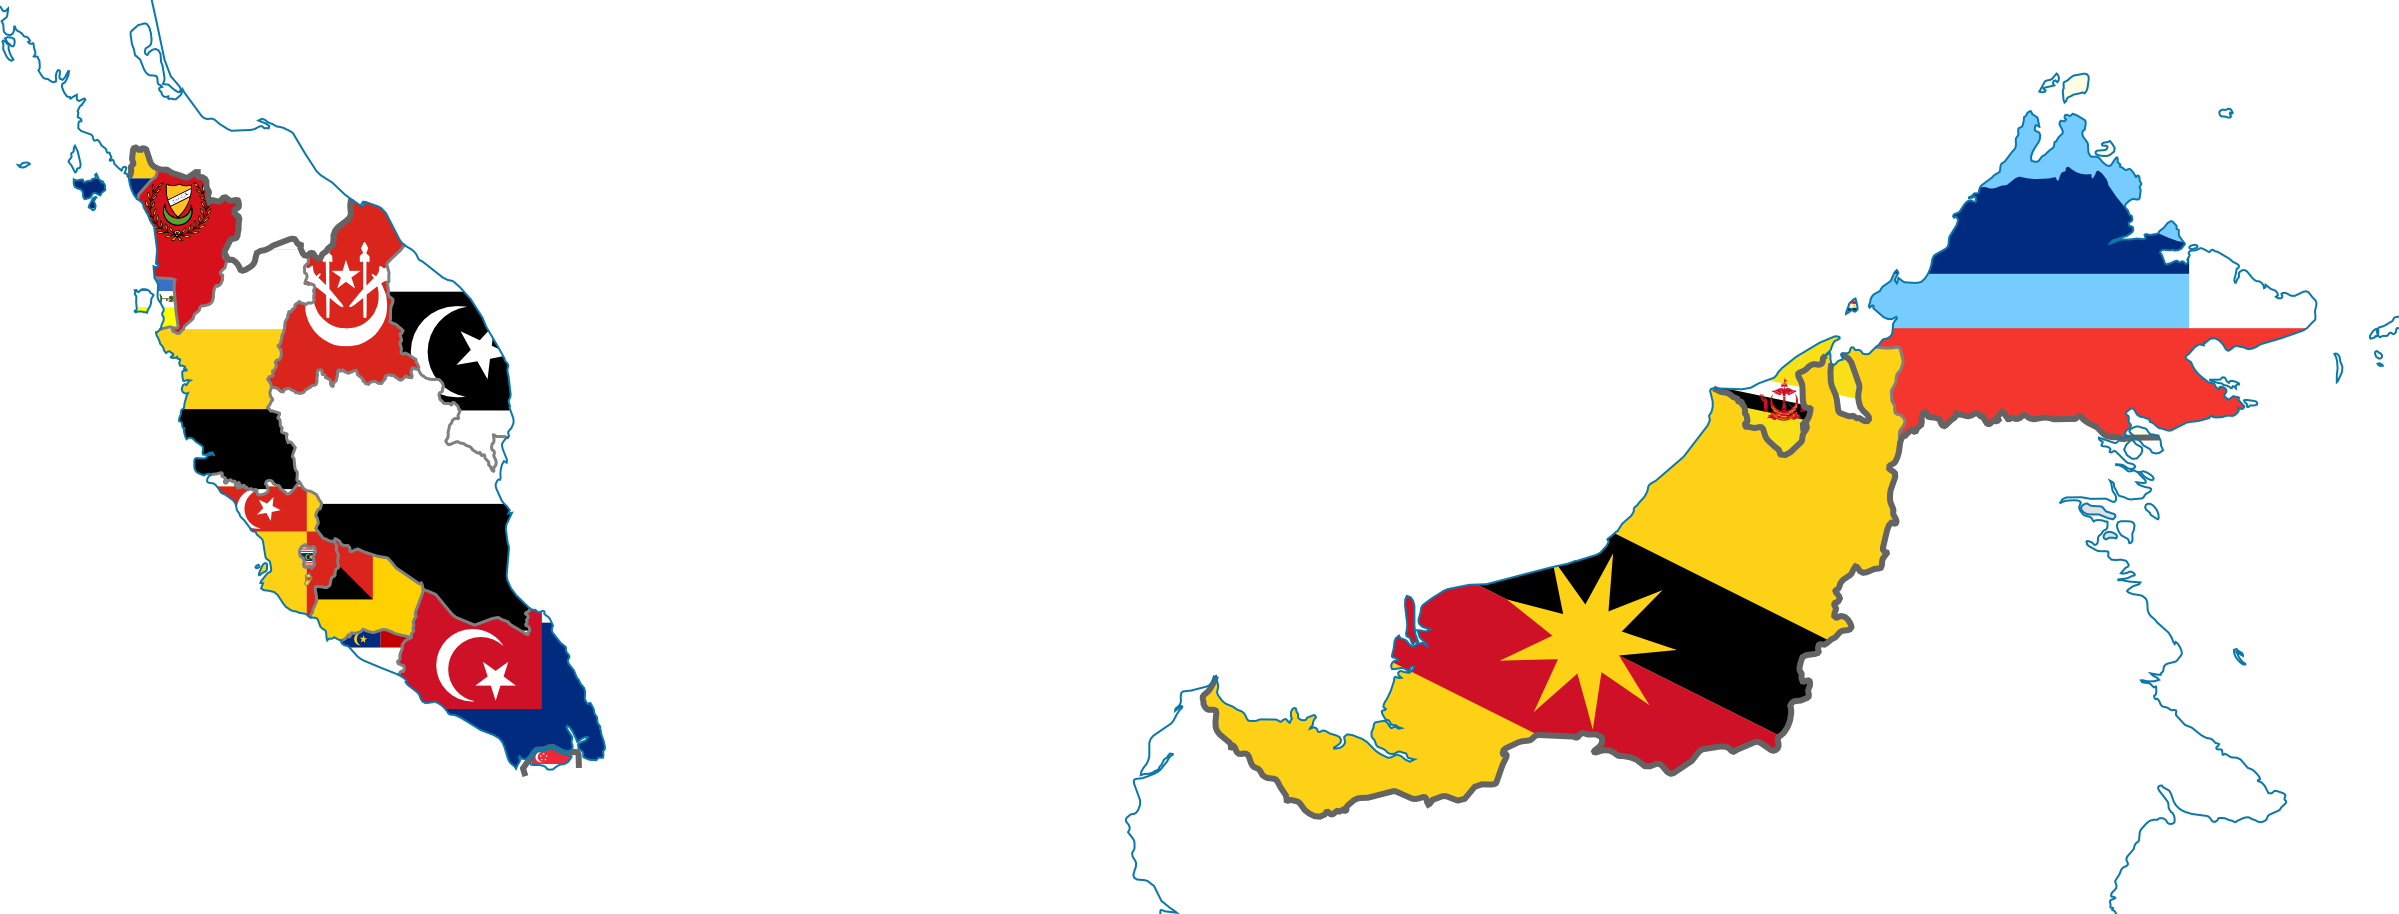 http://orig10.deviantart.net/998a/f/2014/024/0/f/flag_map_of_states_of_malaysia___singapore__brunei_by_hosmich-d73huf3.png